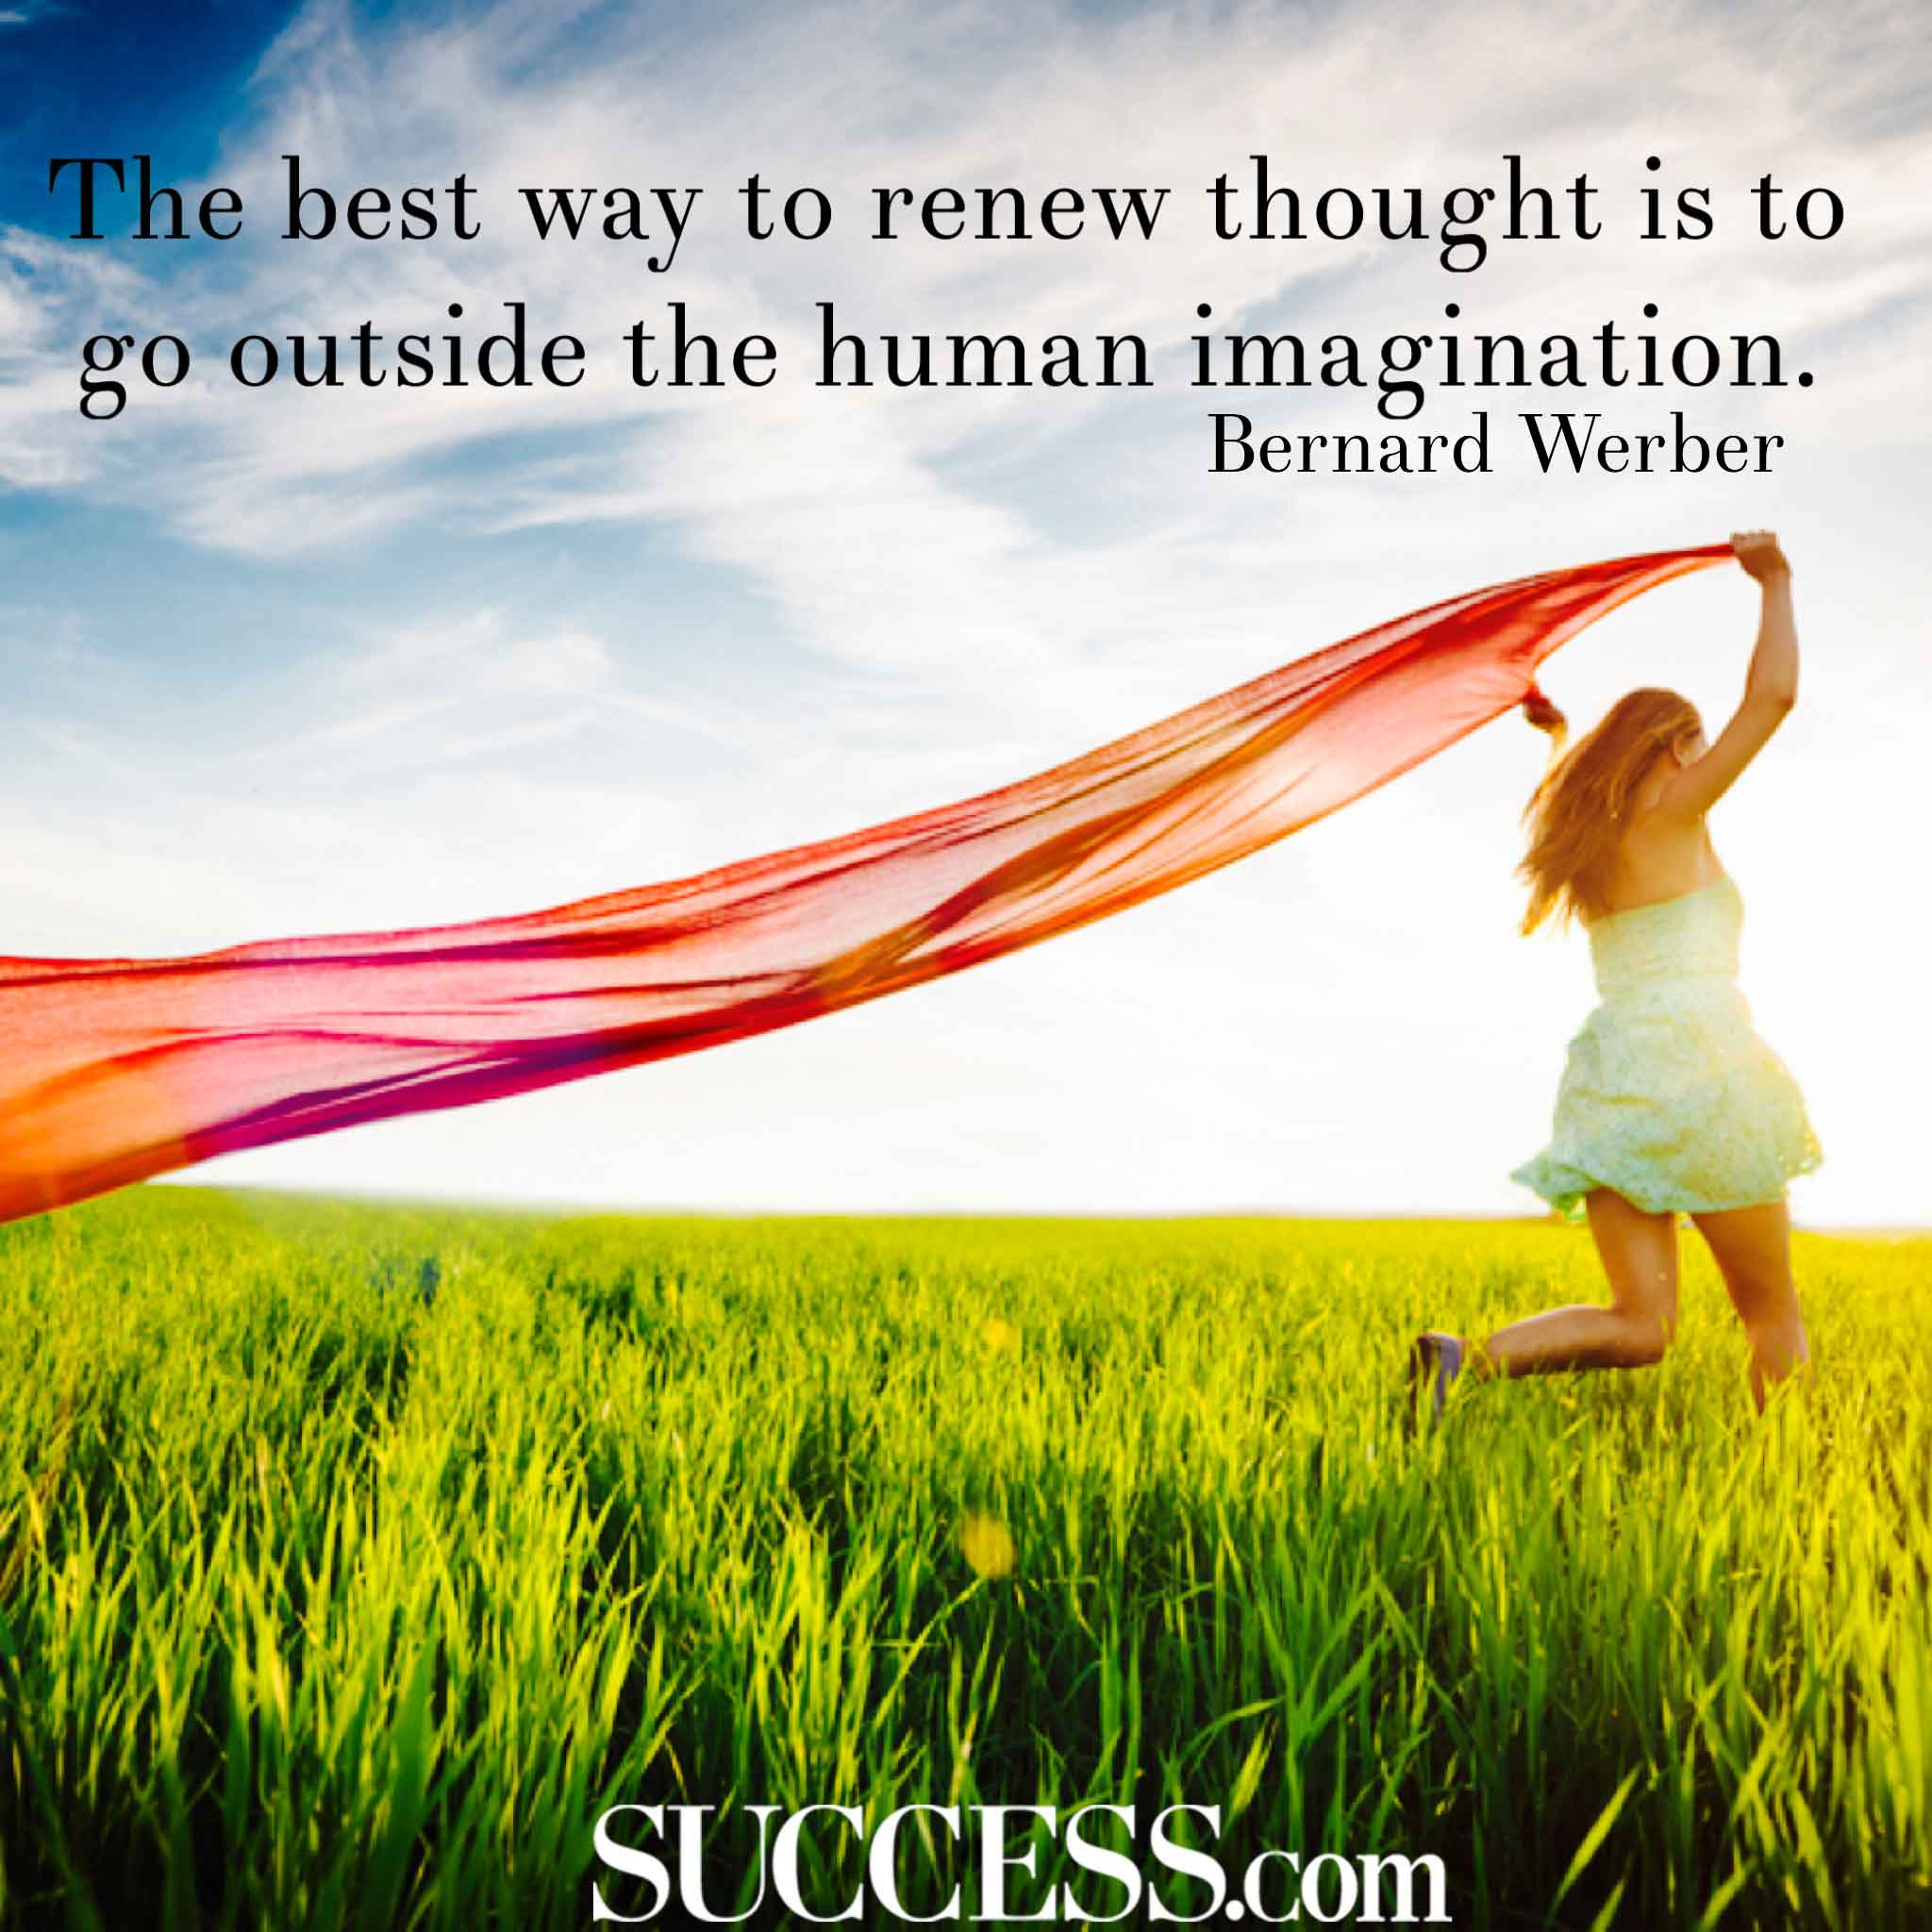 17 Inspirational Quotes to Help you Refocus and Renew